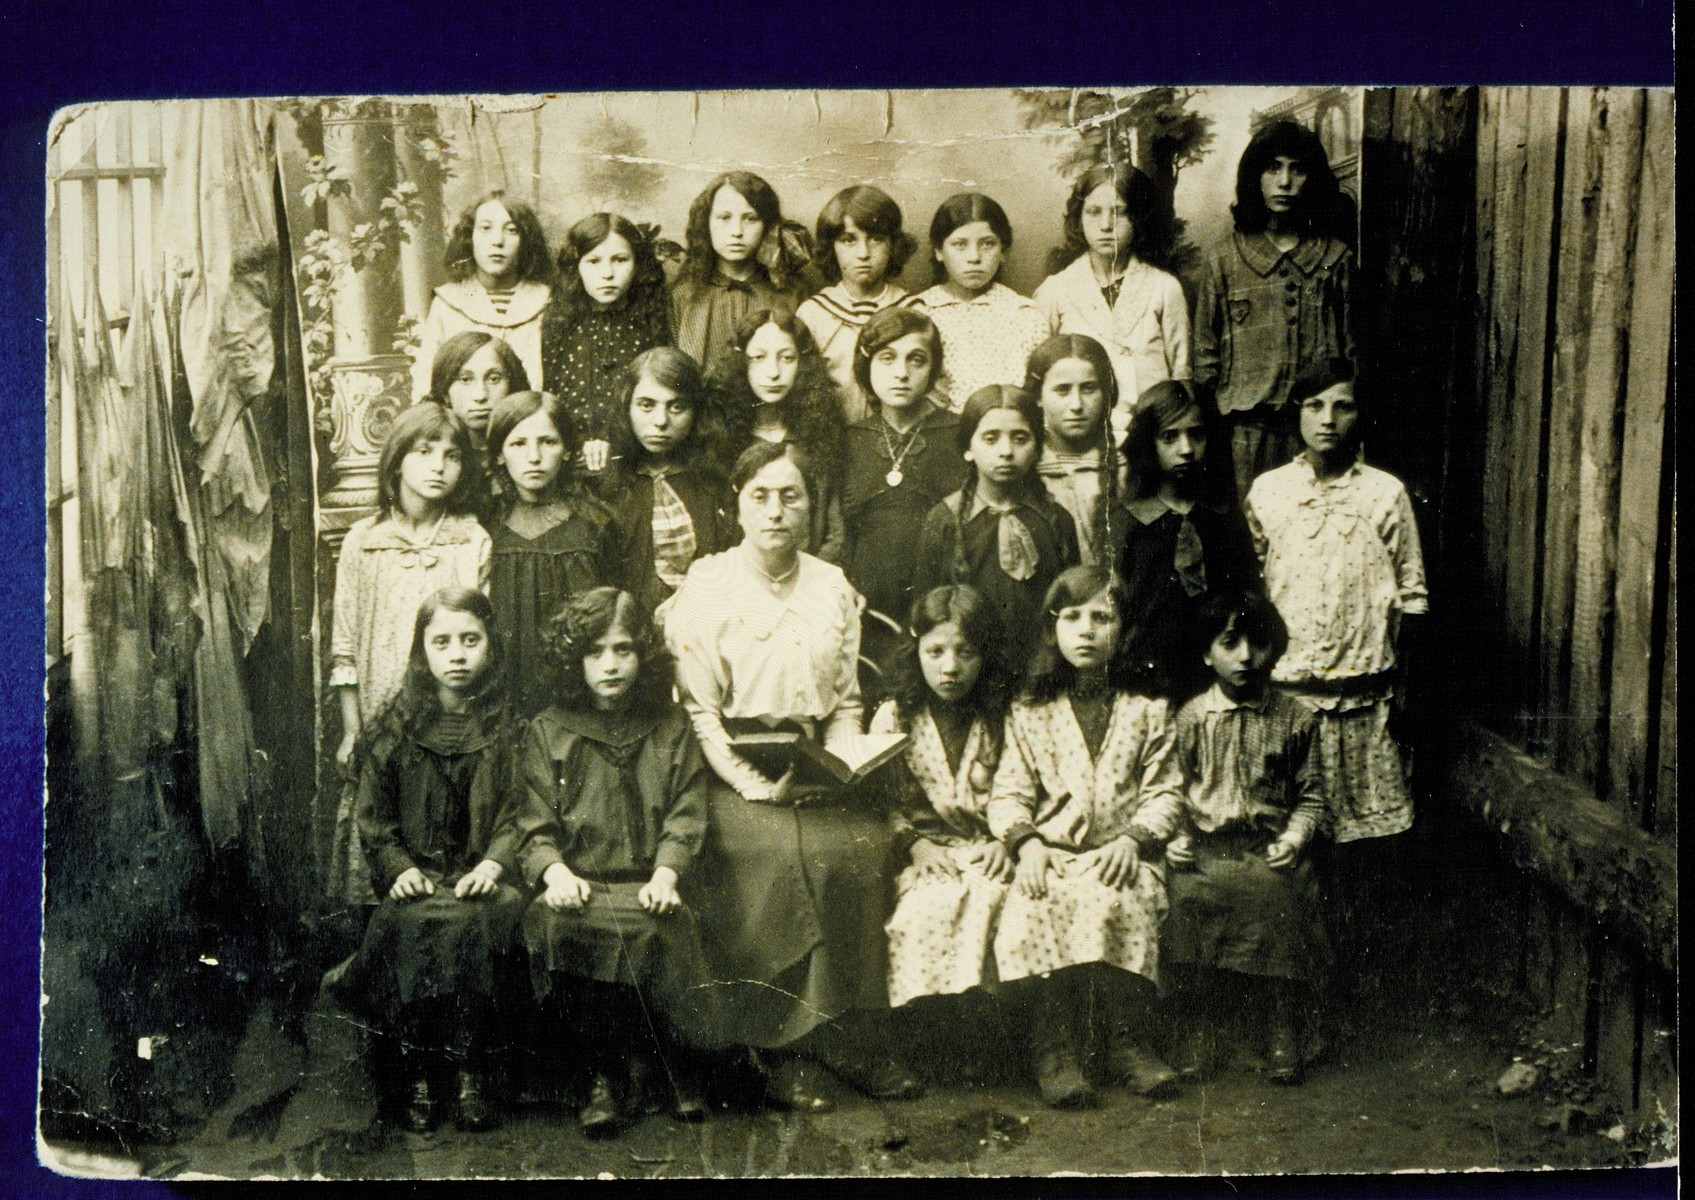 Students at the Yaffskaya Shkola, a school for girls founded circa 1911.   The school's official languages were Russian and German, with courses in Yiddish.  Sitting in the center is the founder, Mrs. Yaffe.  To her left is Zipporah Lubetski.    Zipporah and her sisters emigrated to Palestine and America, as did a few other girls in the photo.  The majority of the girls were murdered by the Germans during the September 1941 mass killing action in Eisiskes and other locations.